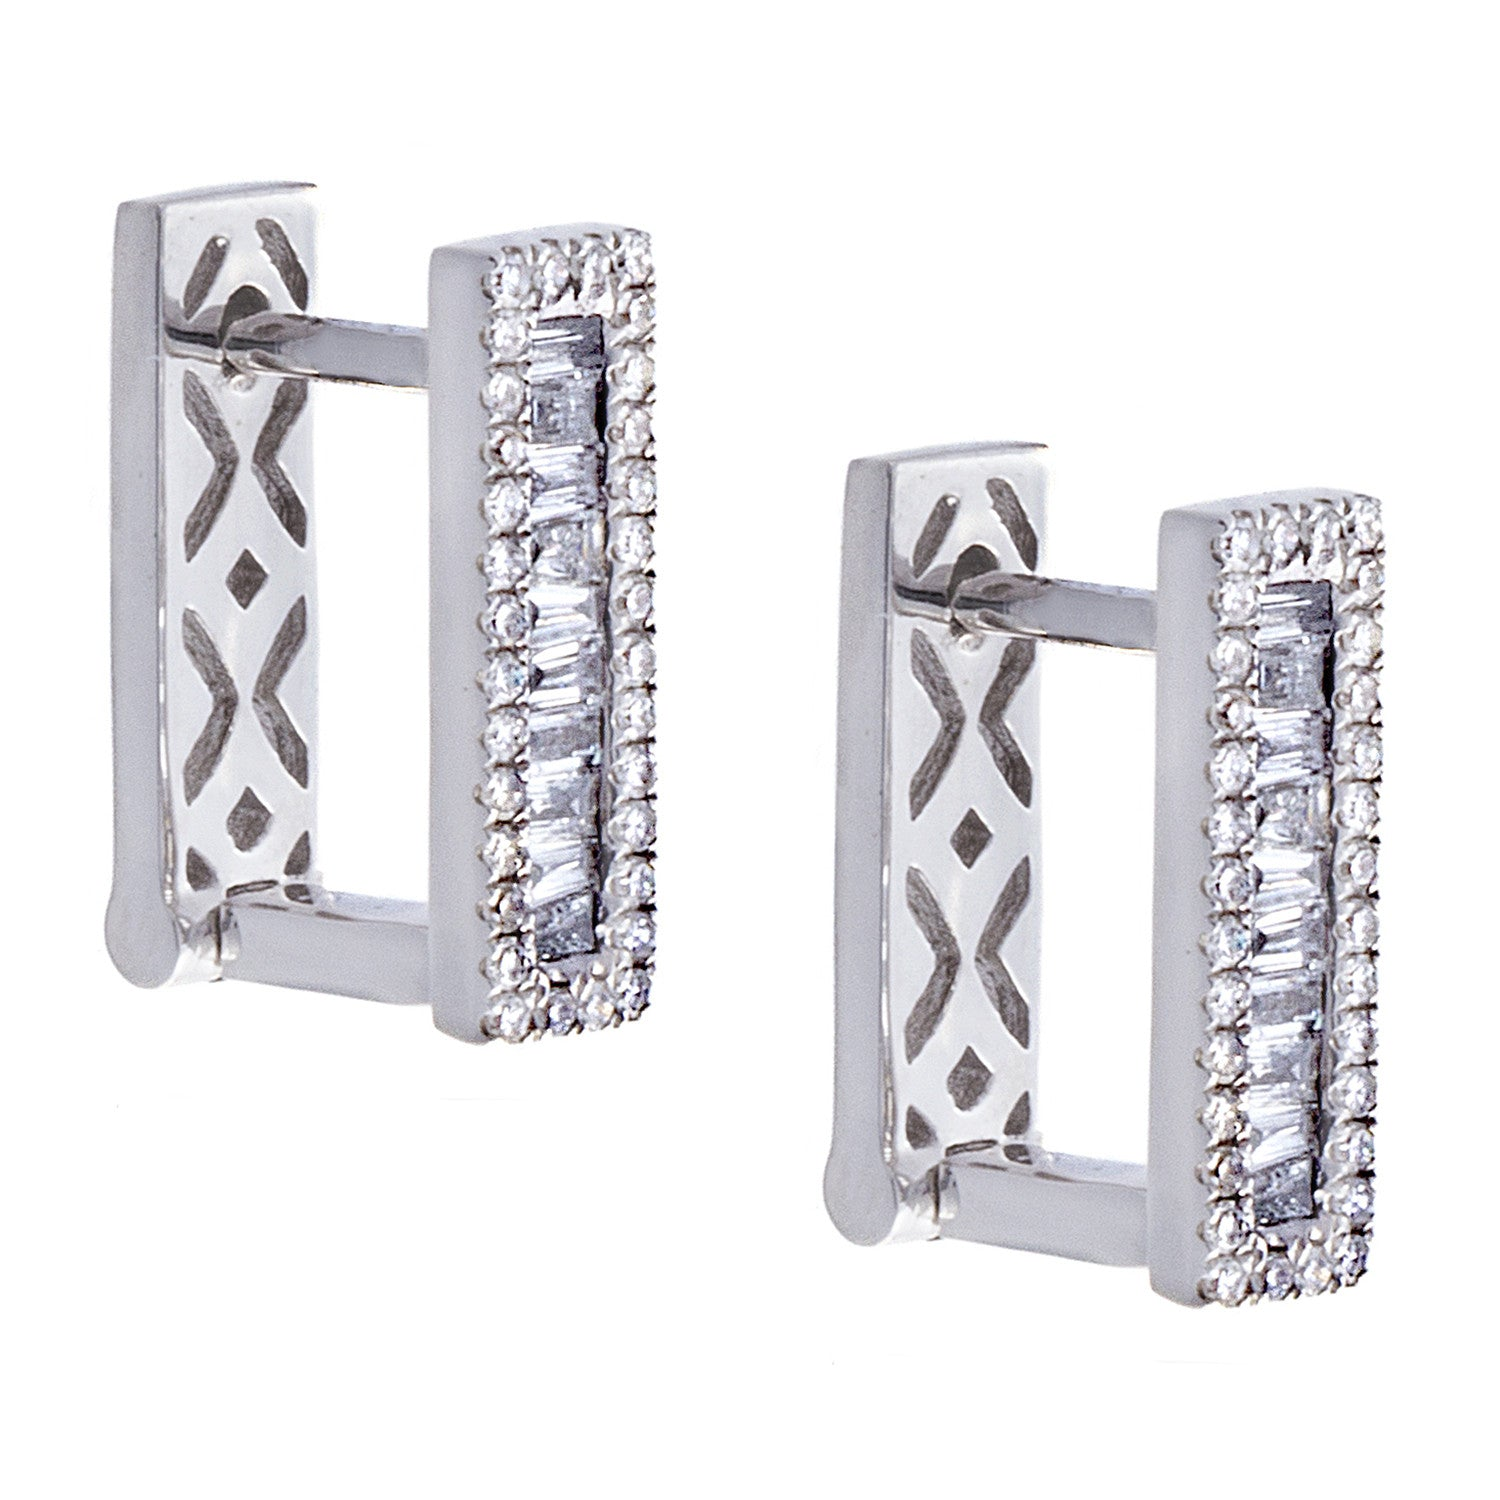 Diamond Baguette & Pavé 14K White Gold Bar Earrings - SOLD/CAN BE SPECIAL ORDERED WITH 4-6 WEEKS DELIVERY TIME FRAME